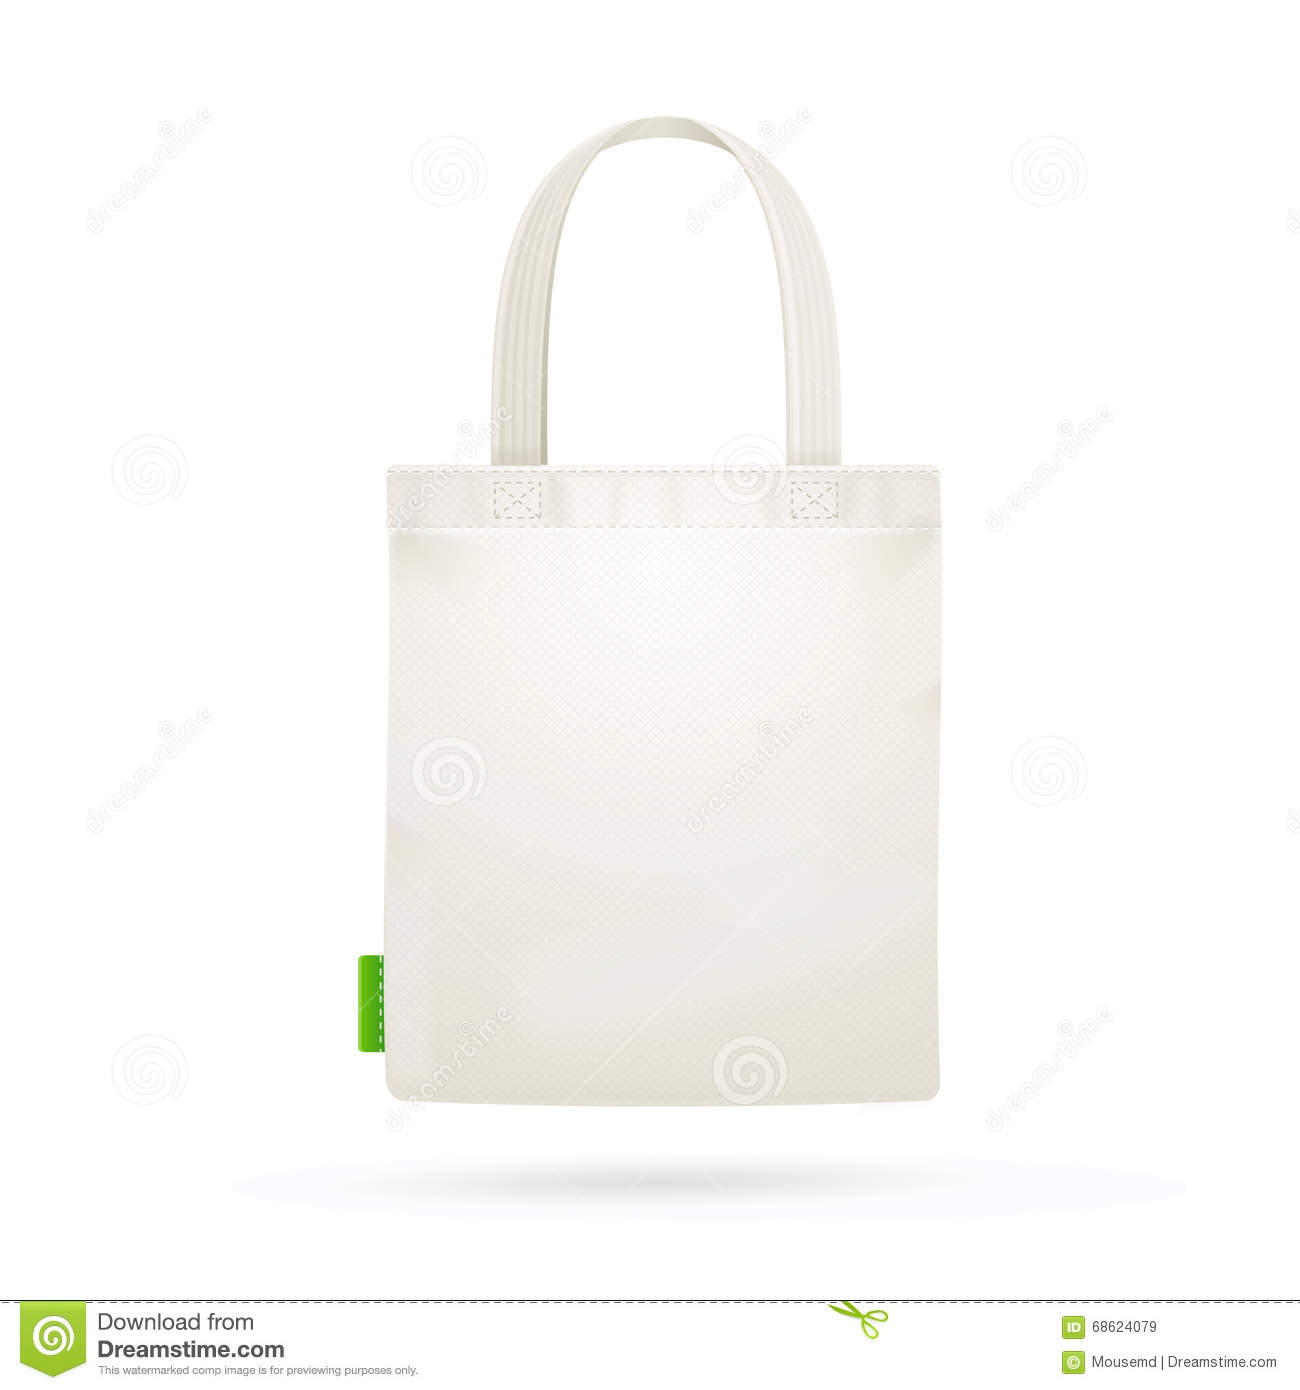 White Fabric Cloth Bag Tote. Vector Stock Vector - Image: 68624079